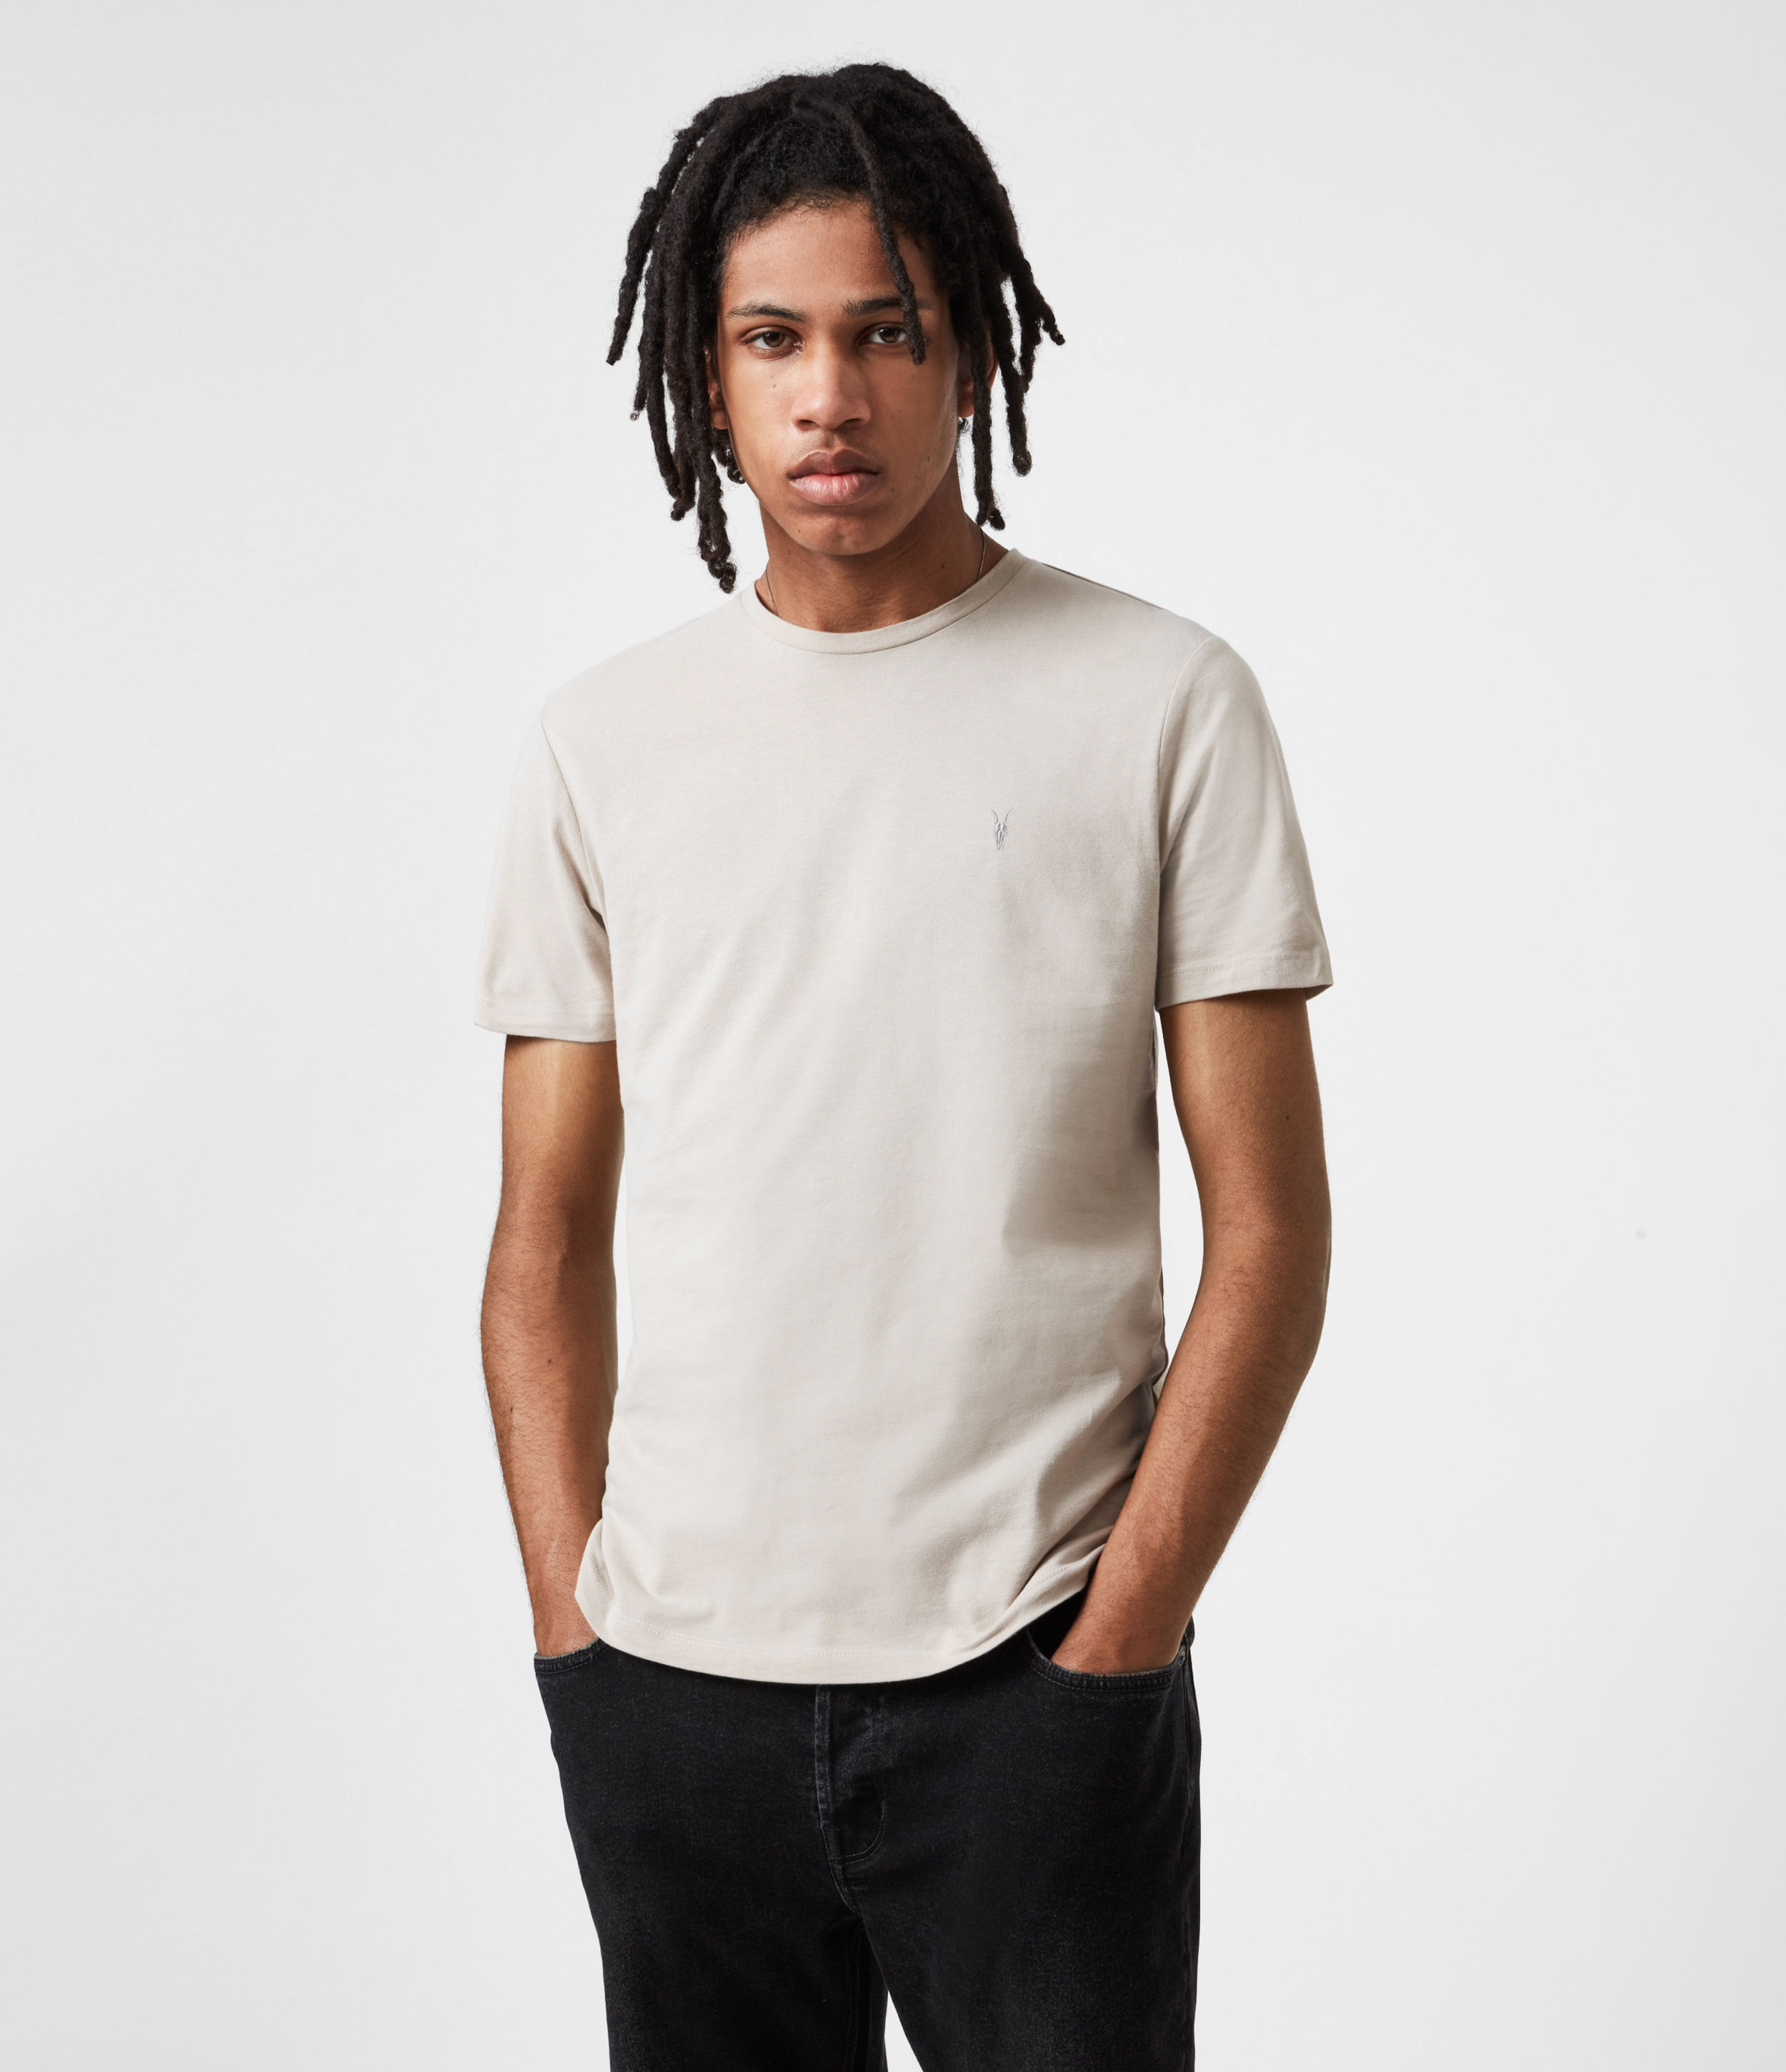 AllSaints Mens Brace Crew T-Shirt, Toasted Taupe, Size: XXL